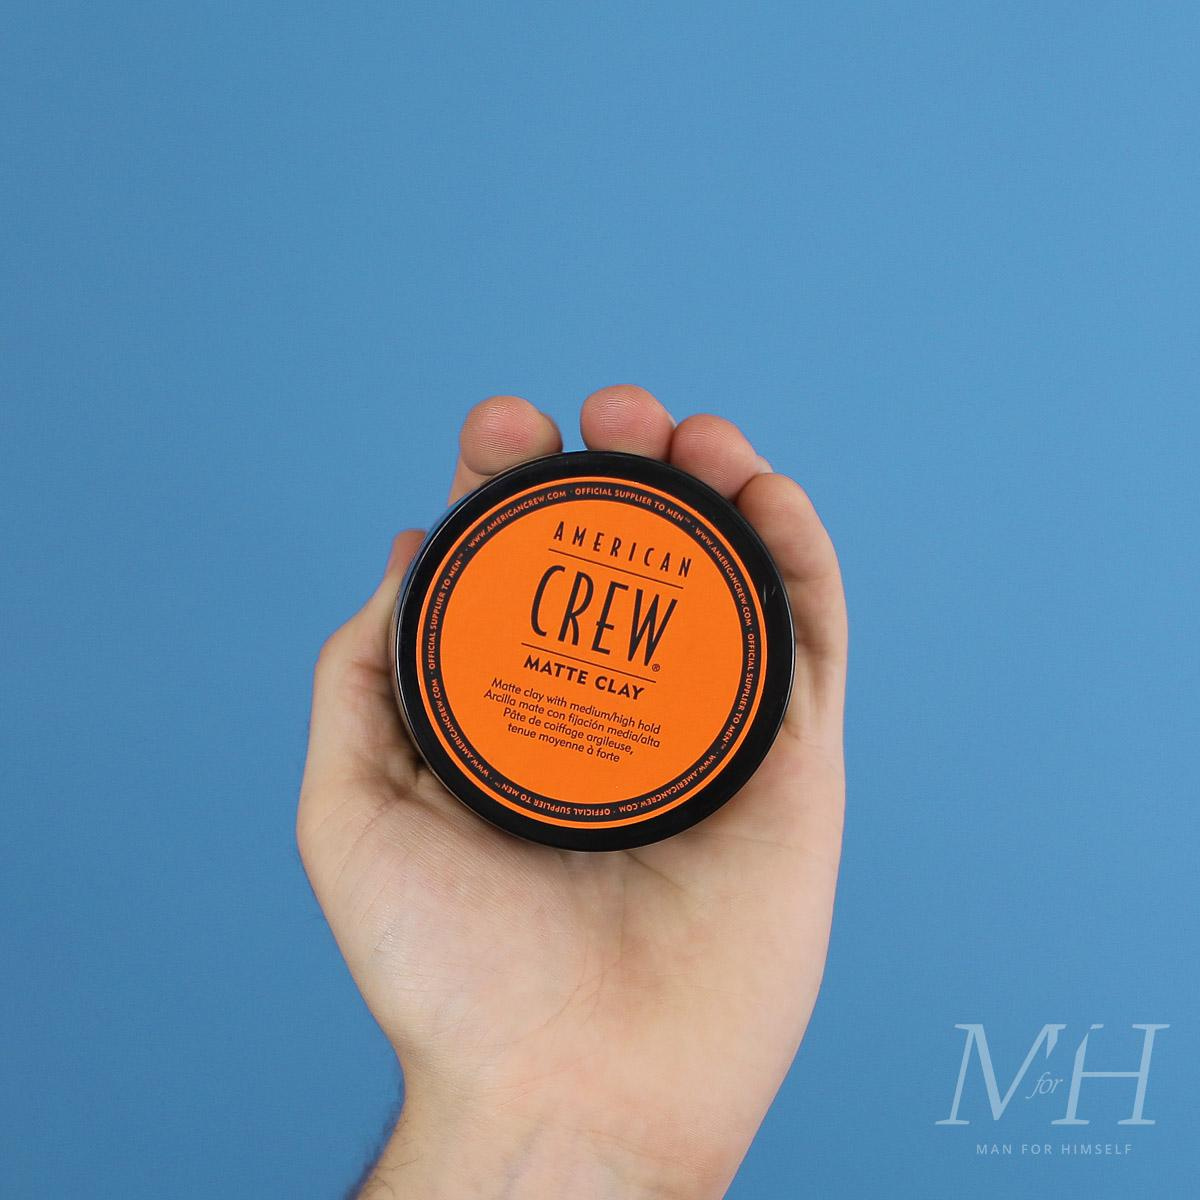 american-crew-matte-clay-product-review-man-for-himself